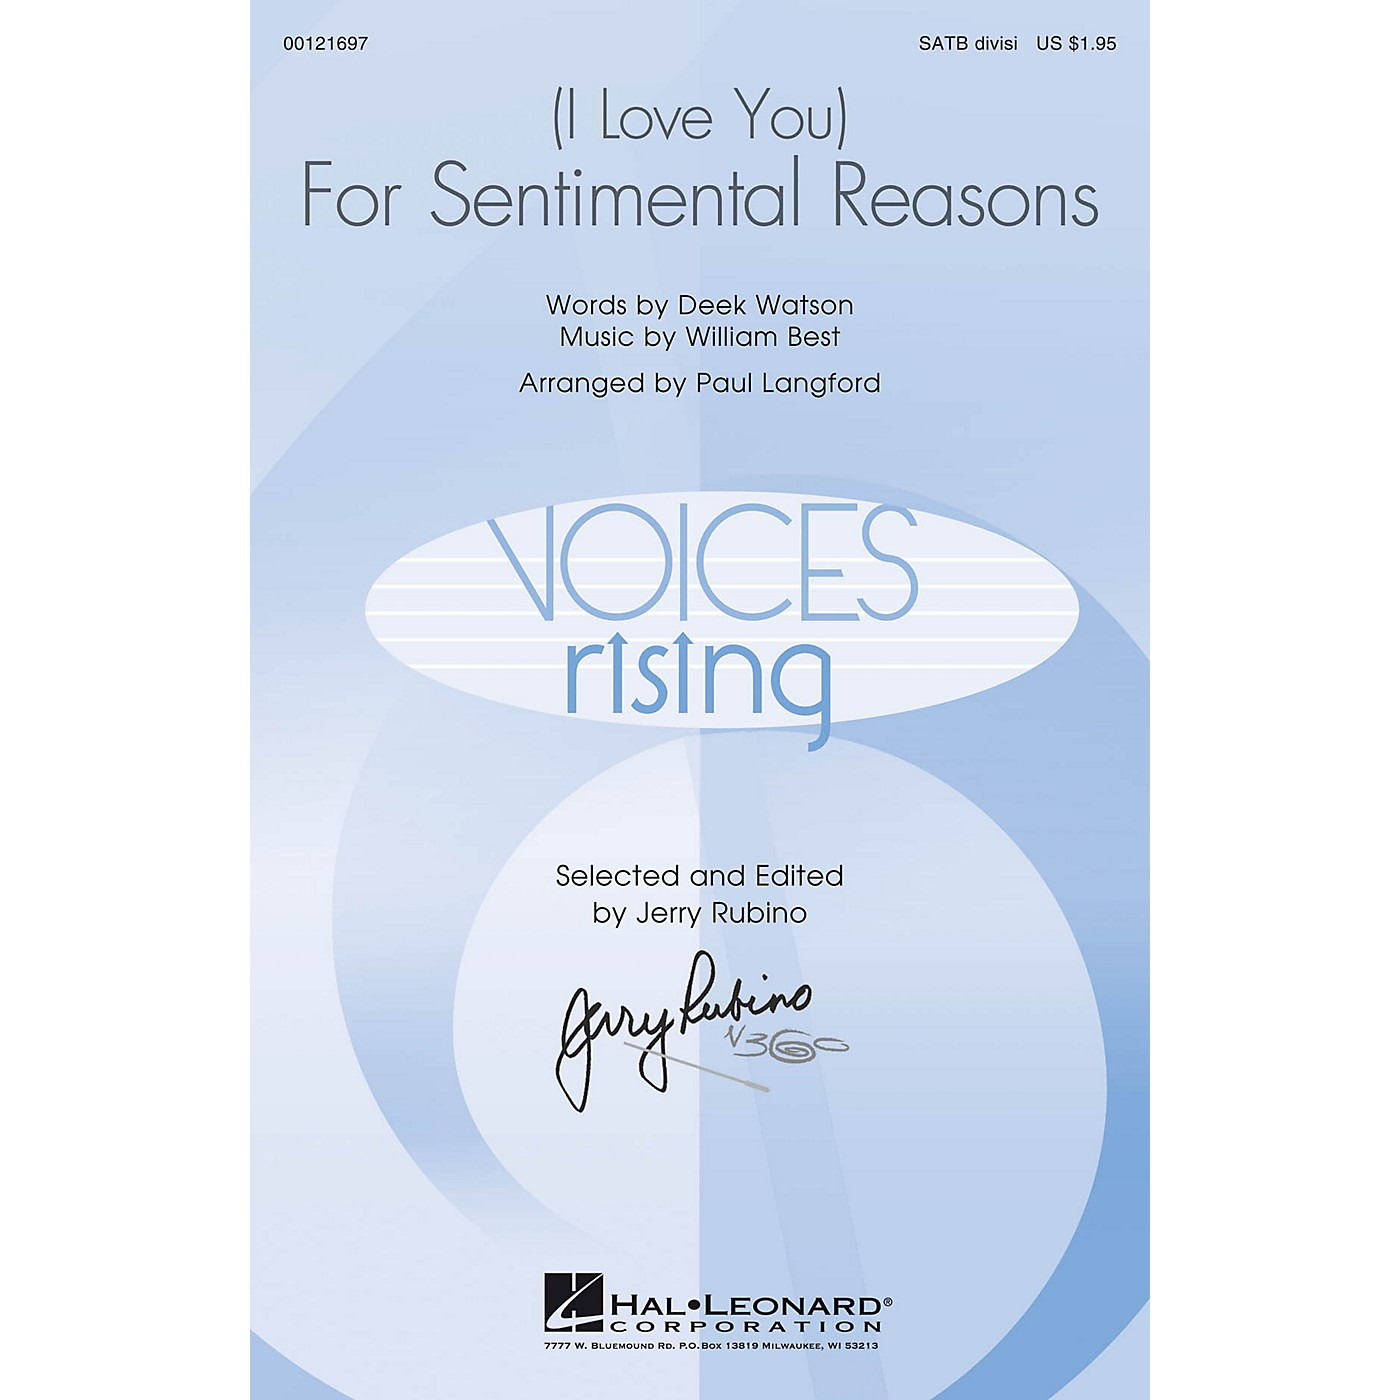 Hal Leonard (I Love You) For Sentimental Reasons SATB Divisi arranged by Paul Langford thumbnail